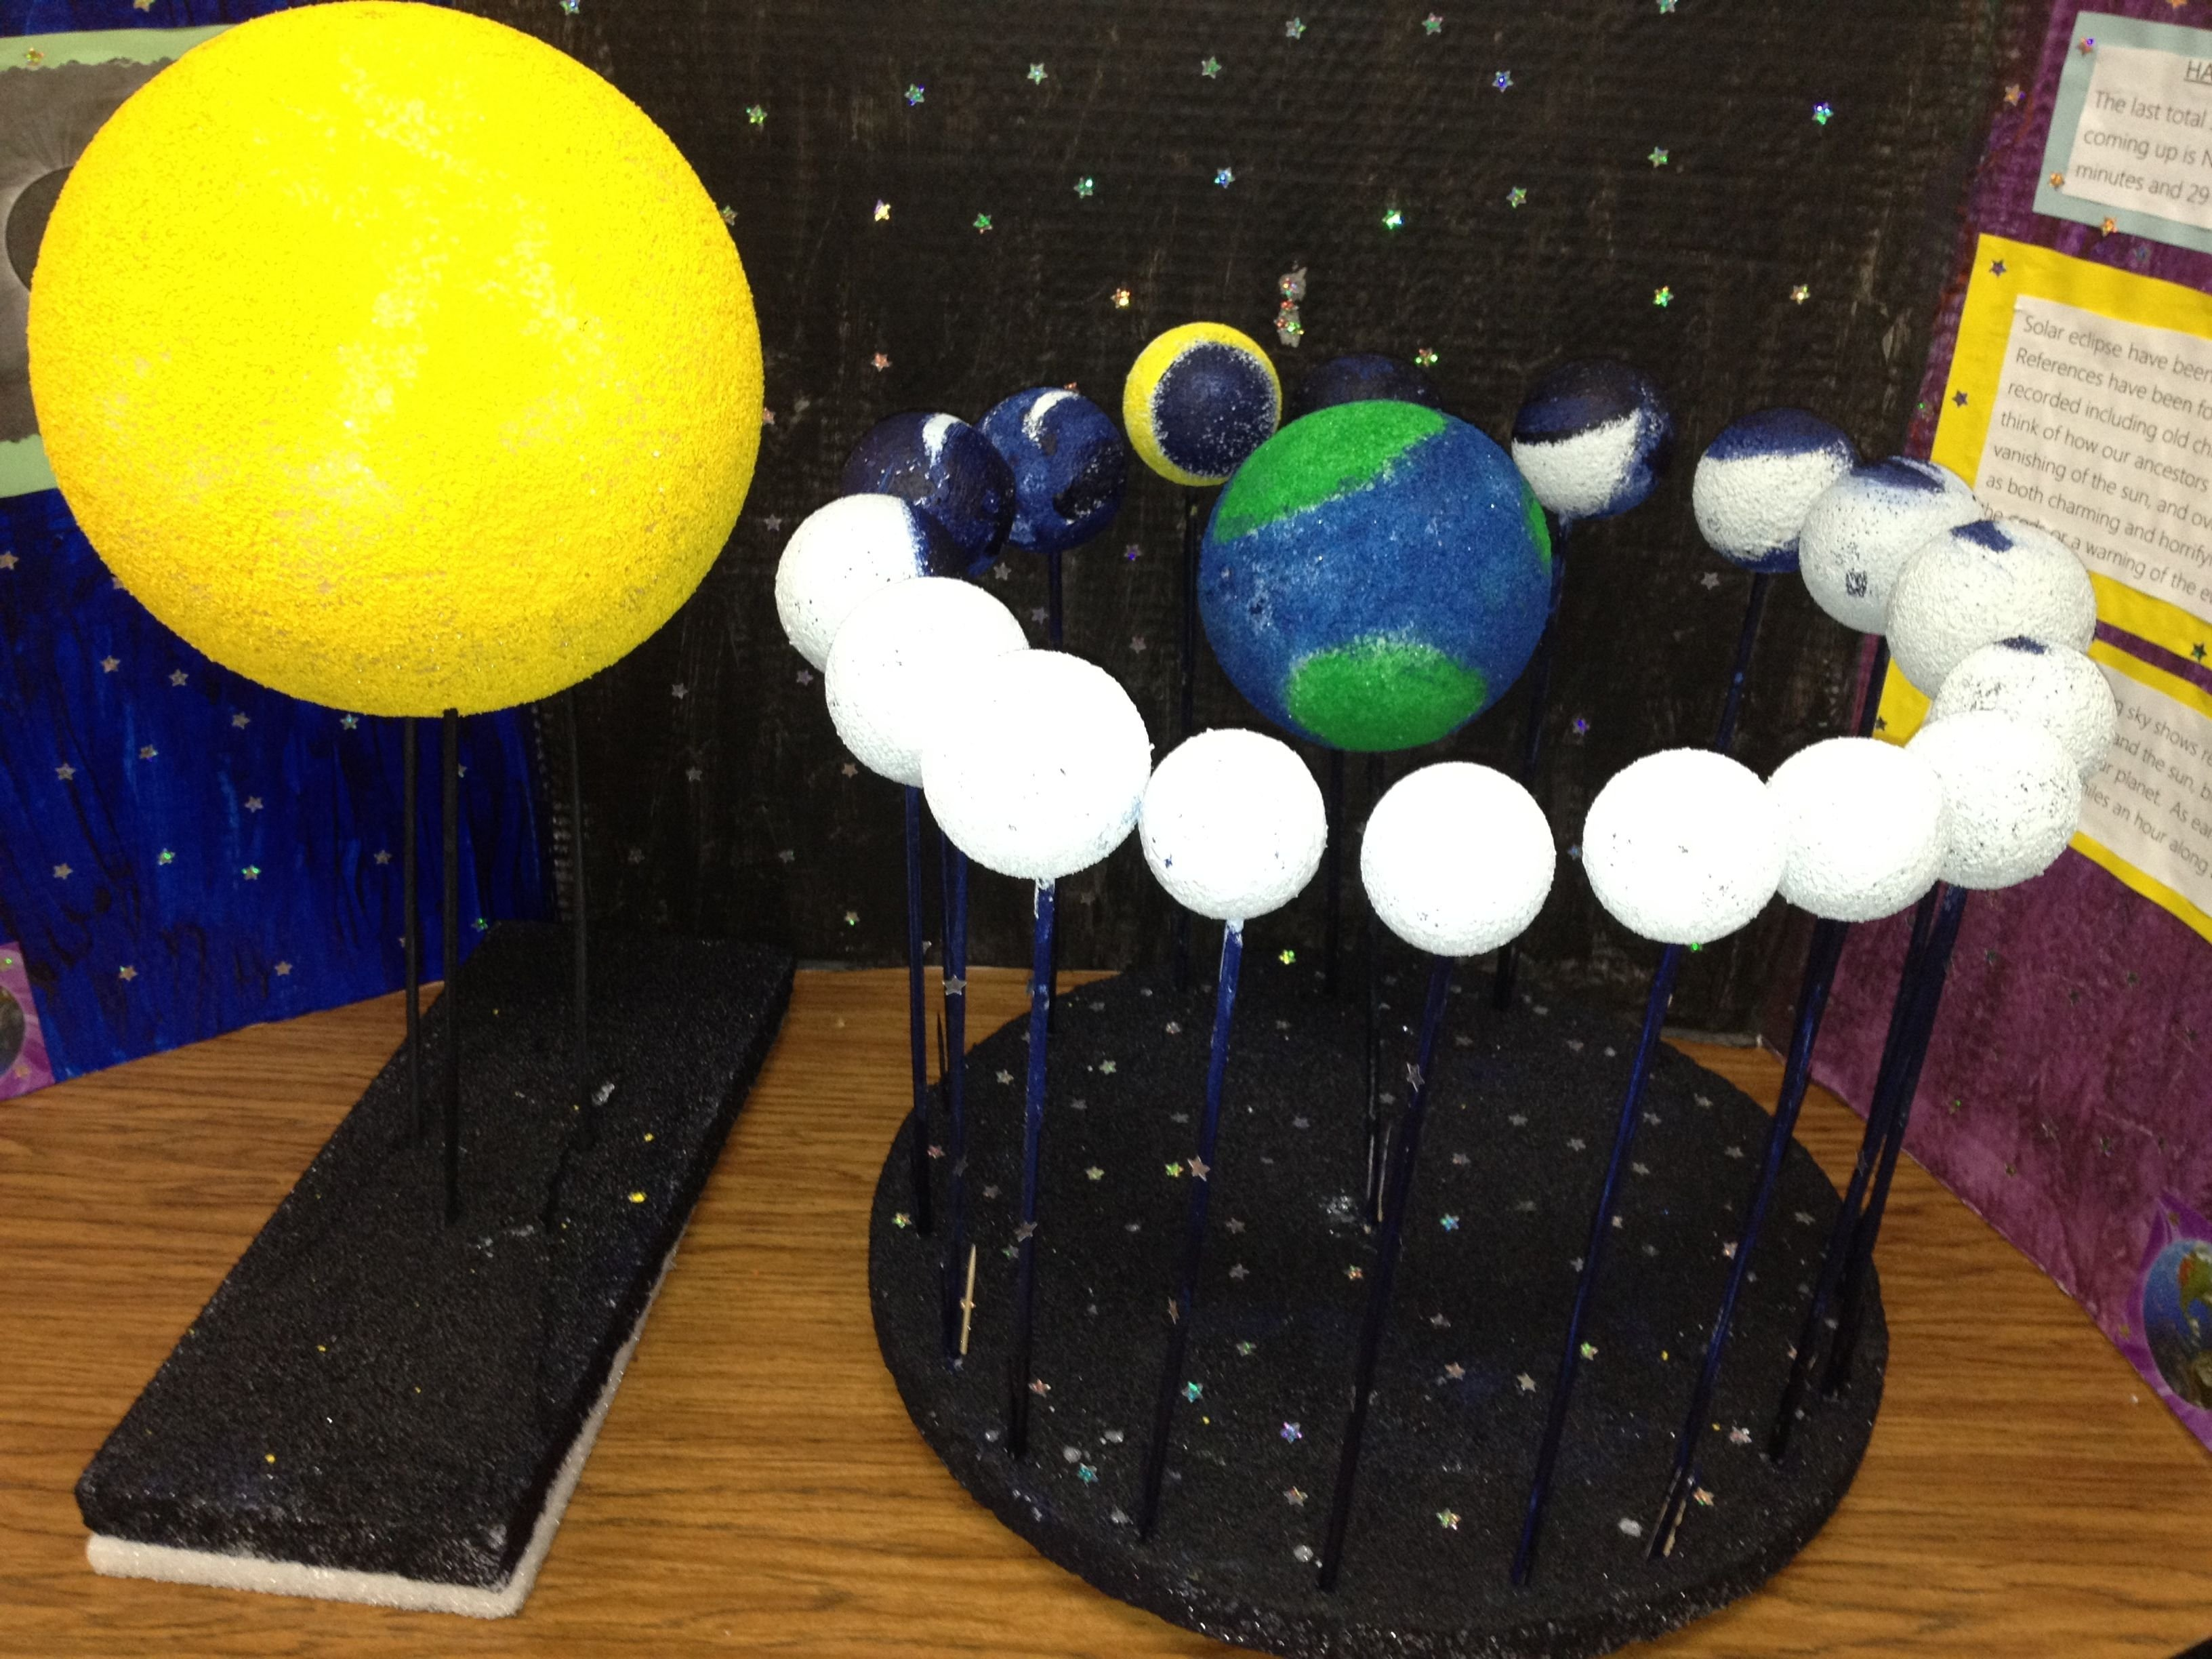 10 Attractive Phases Of The Moon Project Ideas asolareclipsesciencefairproject solar eclipse model cmi 2020